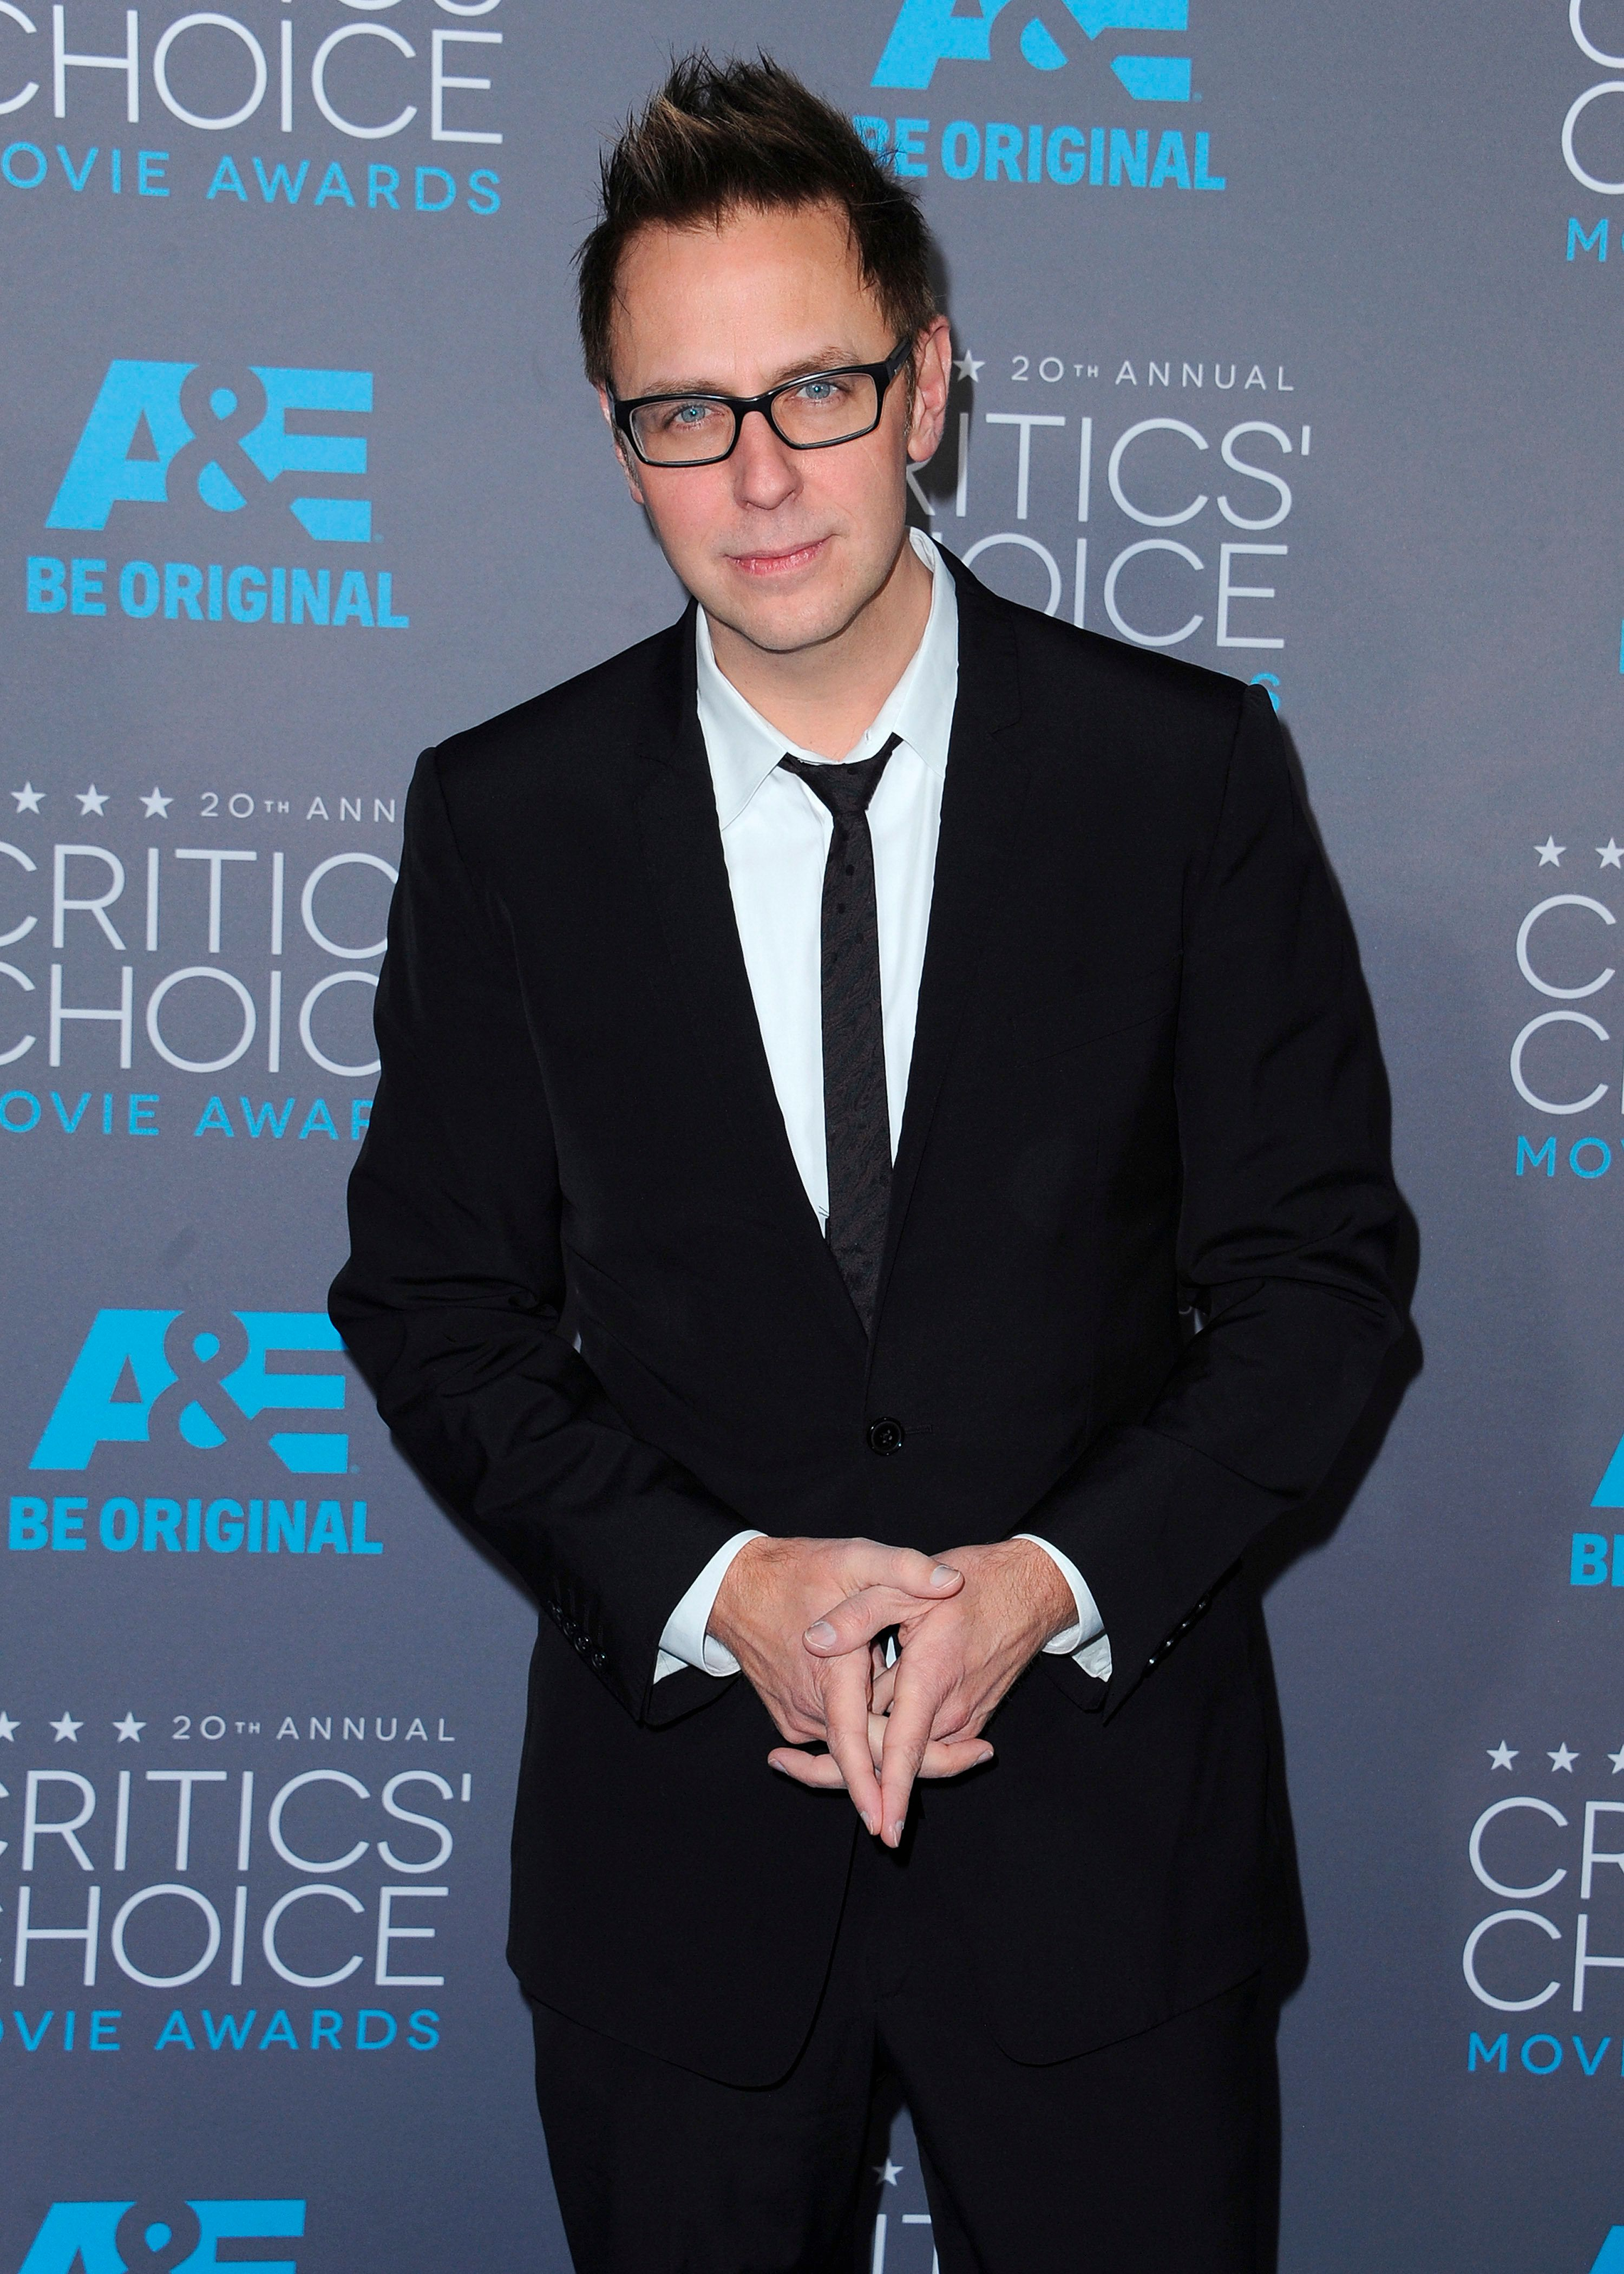 ***FILE PHOTO*** James Gunn Fired From Guardians of the Galaxy Vol. 3 After Resurfaced TweetsLOS ANGELES, CA - JANUARY 15: James Gunn at the 20th Annual Critics' Choice Movie Awards at the Hollywood Palladium on January 15, 2015 in Los Angeles, California. Credit: PGSK/MediaPunch /IPX